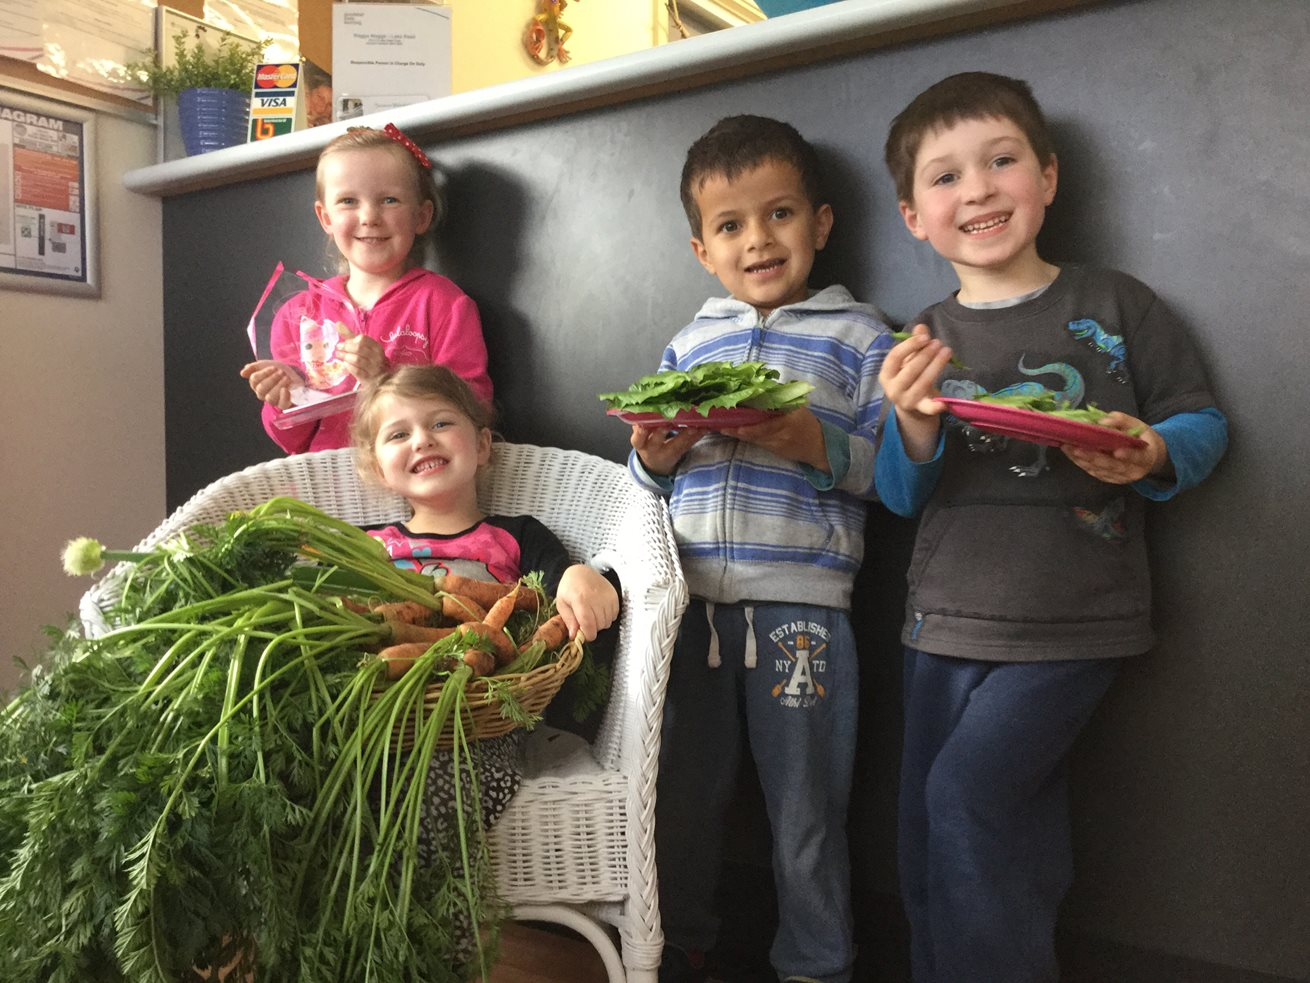 Preschoolers harvest veggies straight from the garden to their lunch box